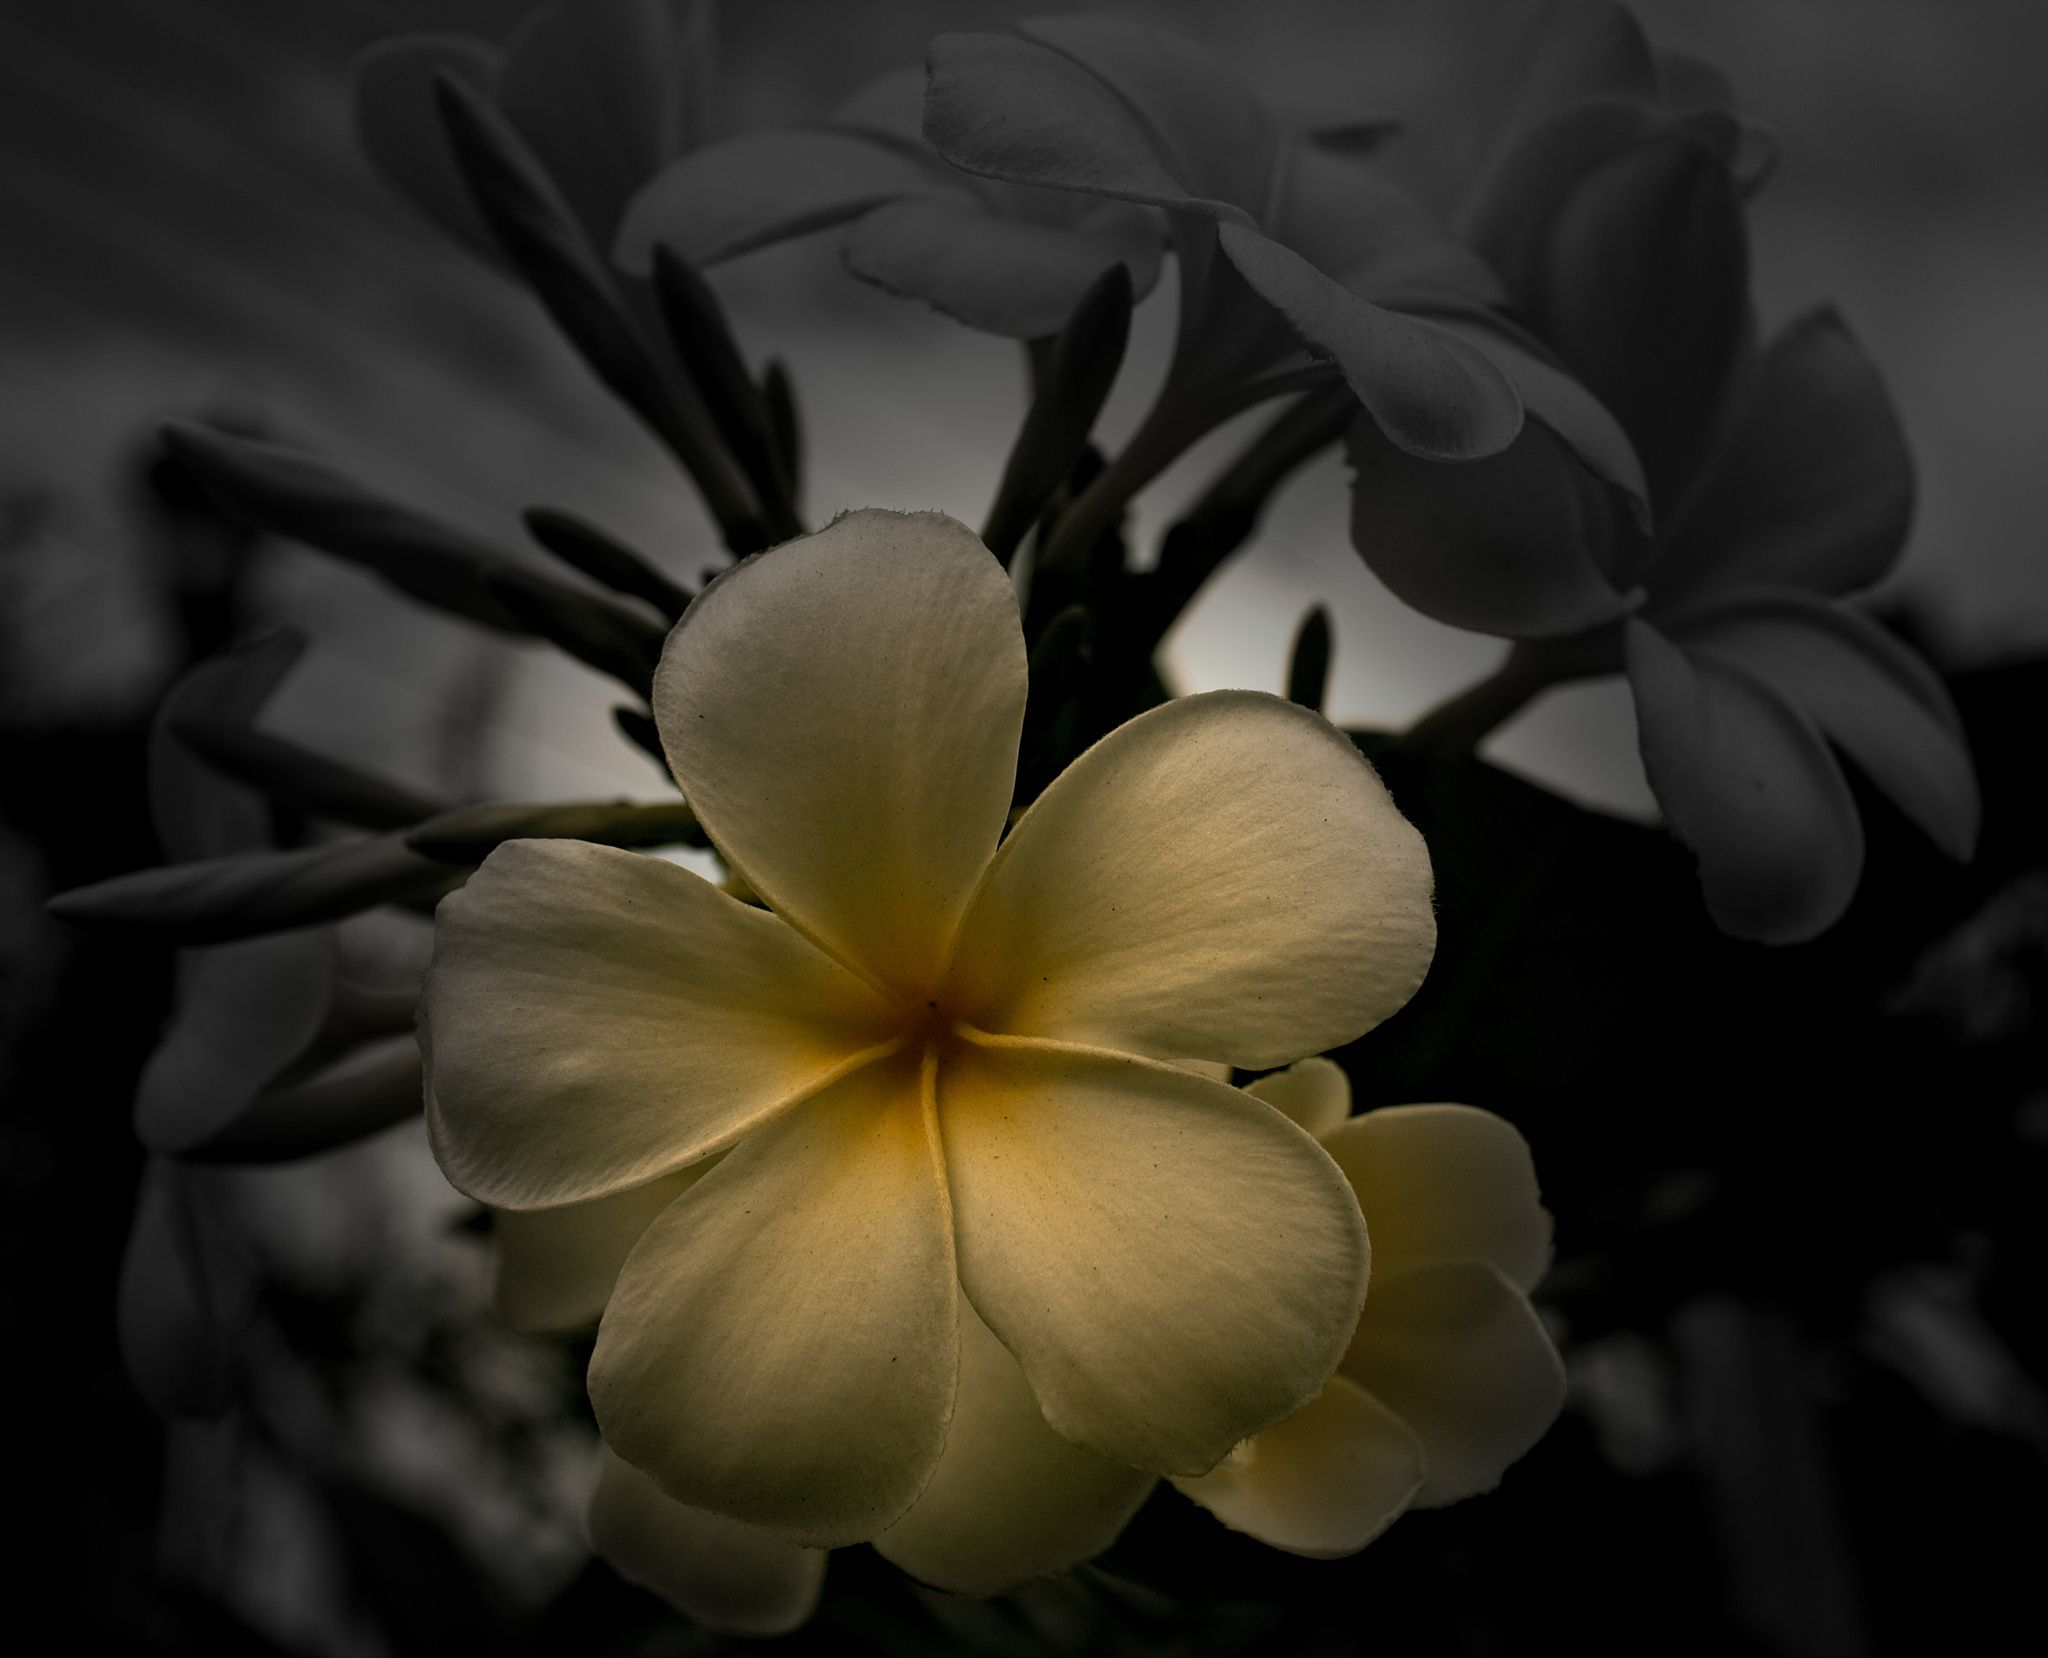 frangipani by Scott Innes on 500px